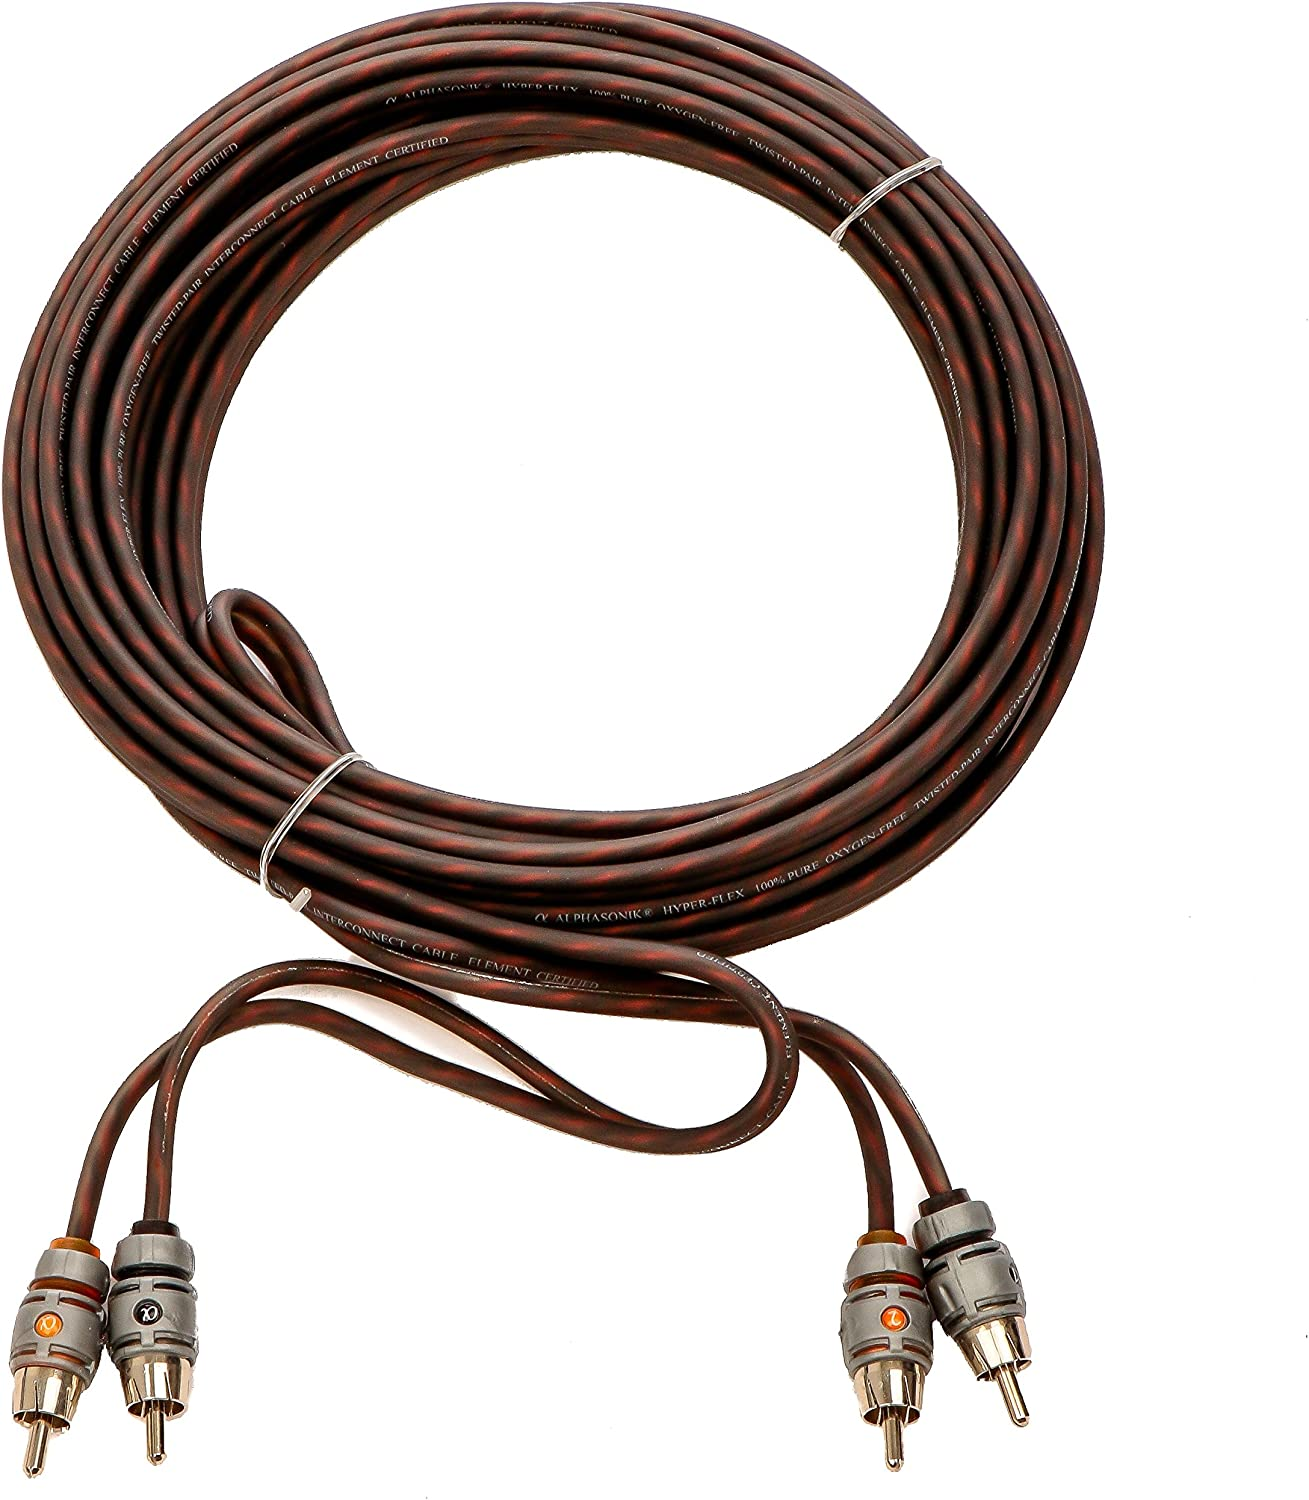 Alphasonik 3 Feet Premium 2 Channel Hyper-Flex RCA Interconnect Signal Patch Audio Cable with X-Radial Twist Wire Technology 100% Oxygen Free Copper Element Certified for Multiple Applications FLEX-R3 91QlZuVnFgL